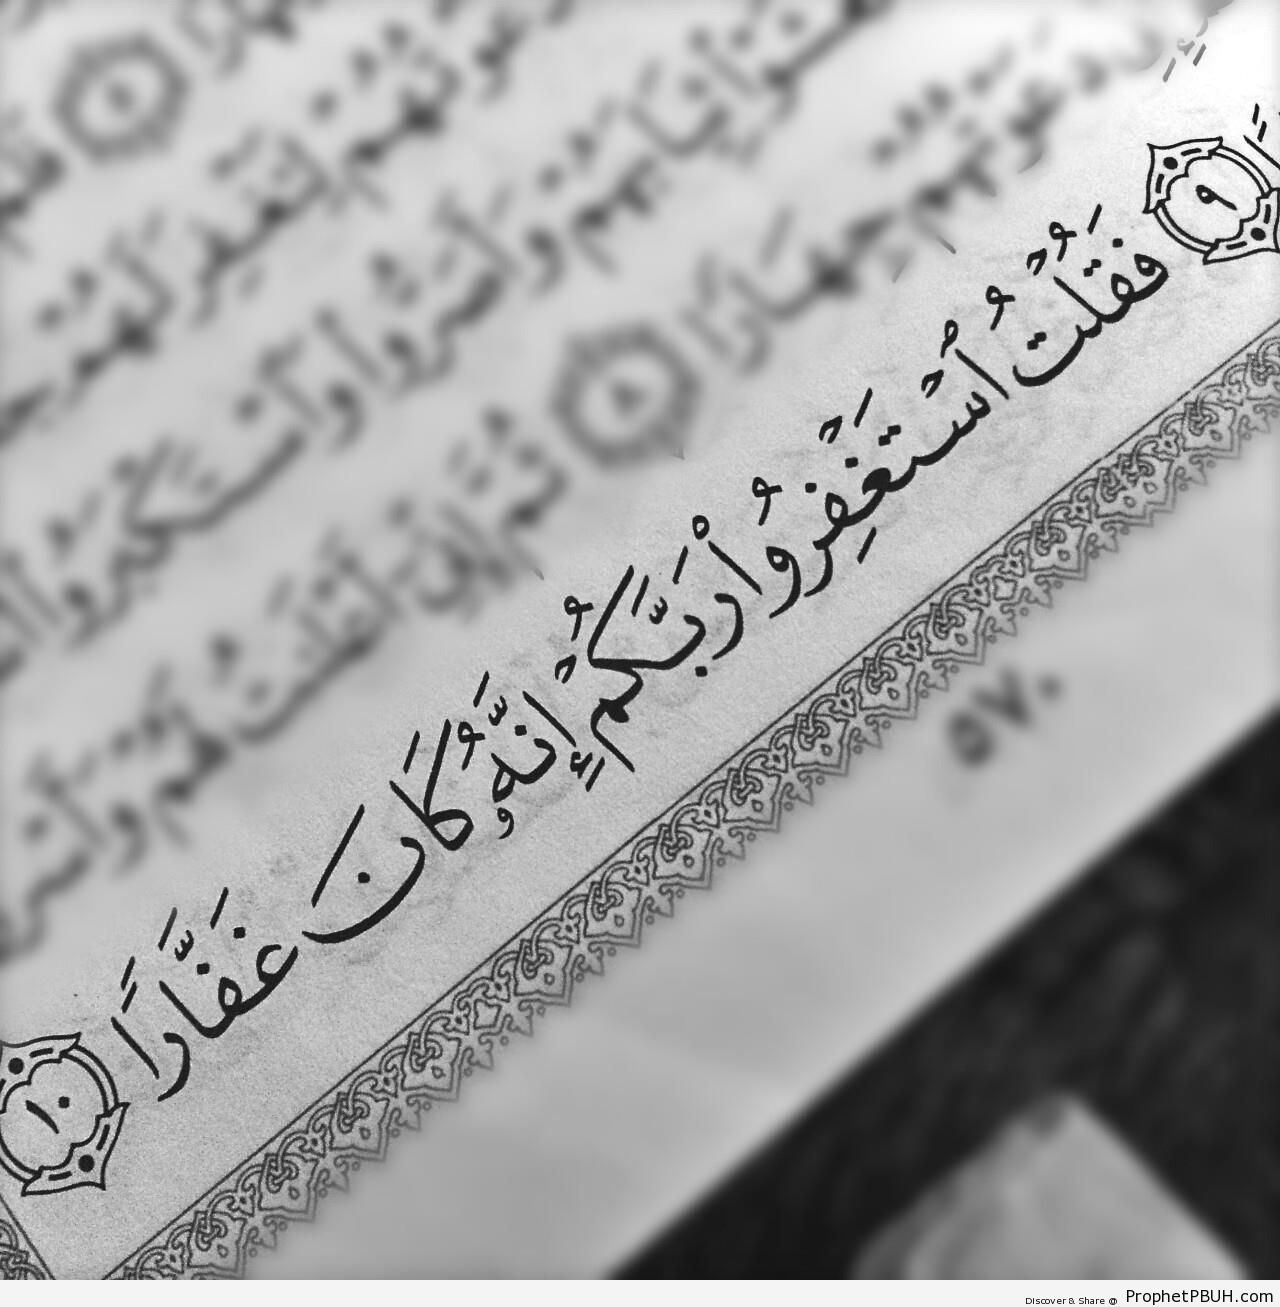 Black and White Mushaf Photo Showing Quran 71-10 - Islamic Black and White Photos